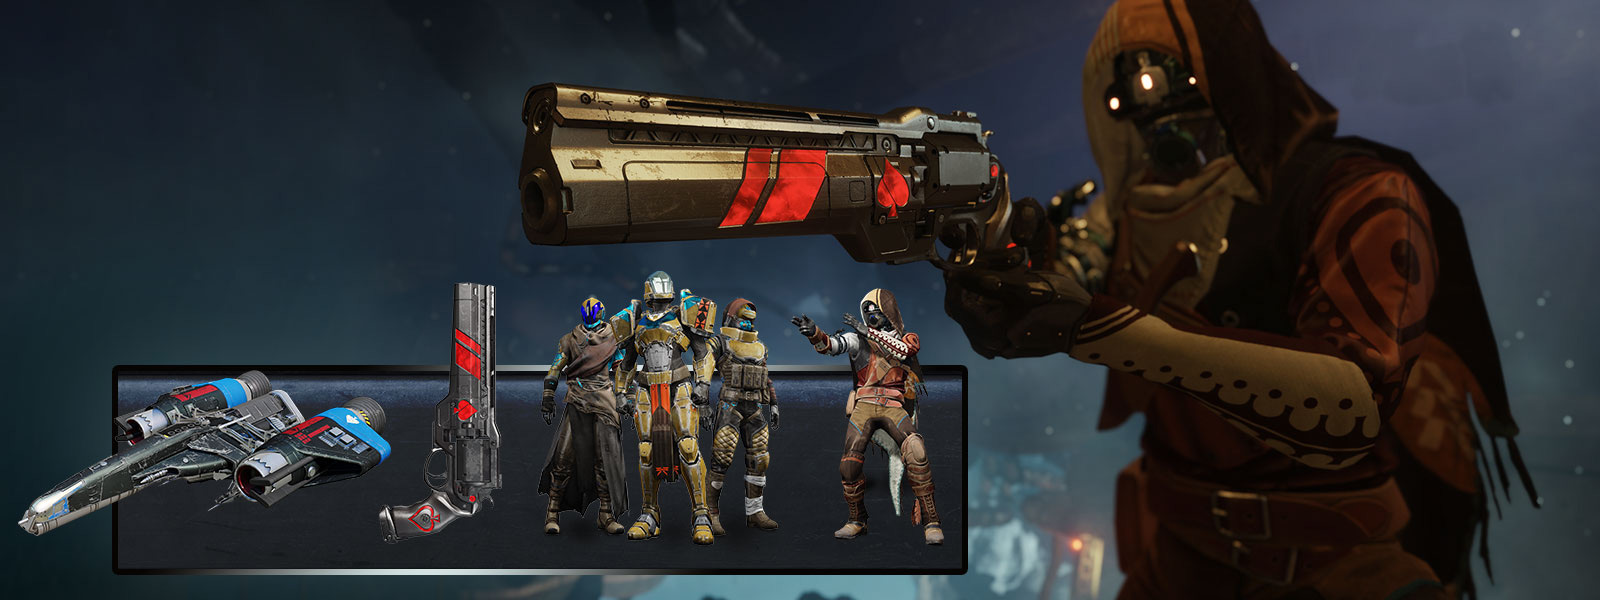 Guardian wields Cayde-6's Last Hand Exotic Hand Cannon